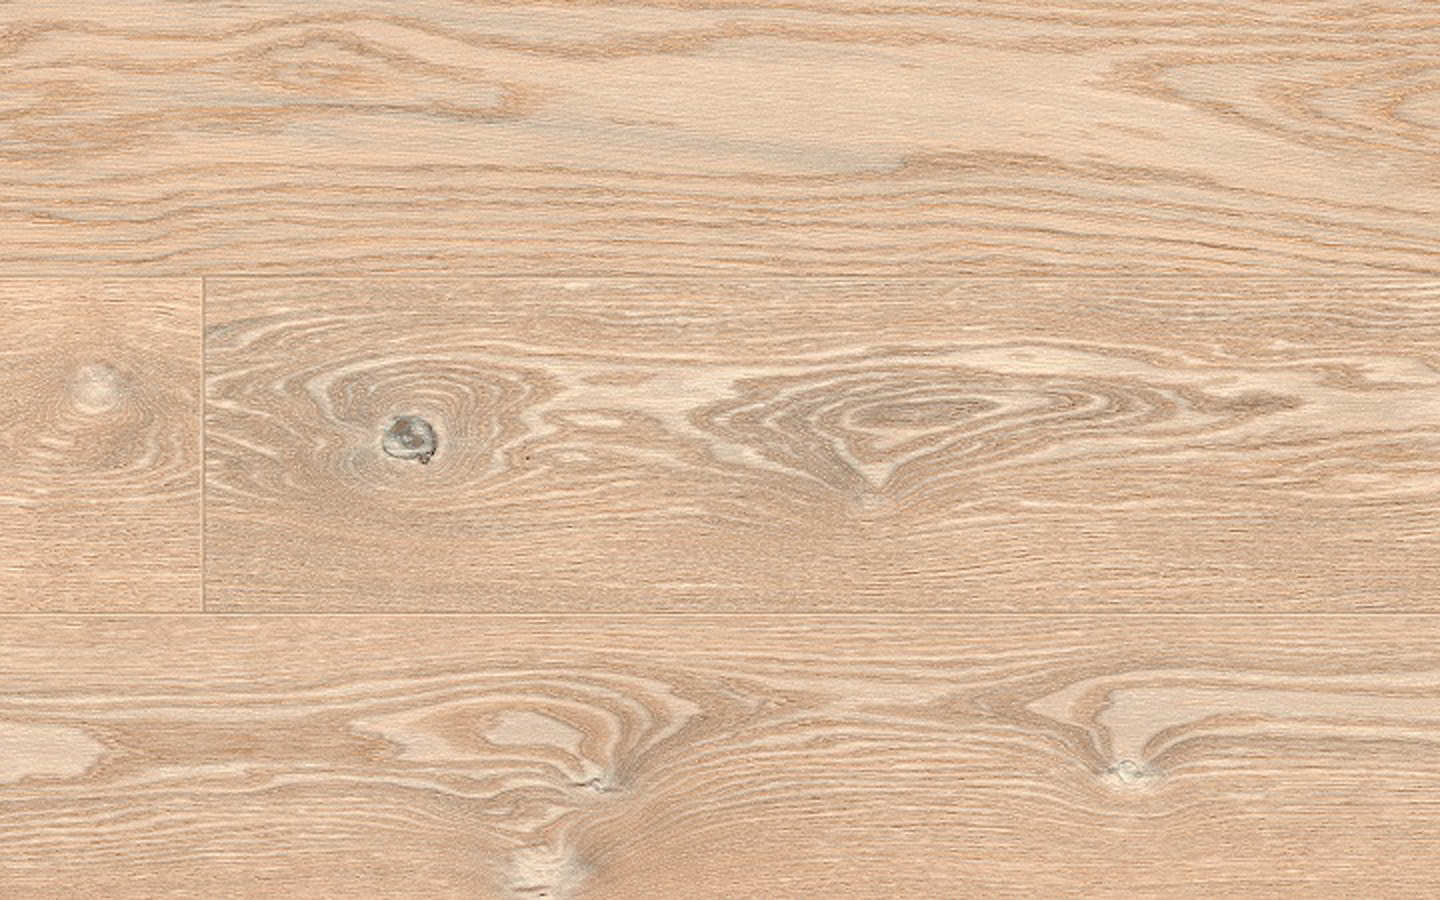 Château by adler - Oak Versailles standard wire brushed color oiled - 19 x 180-350 x 1800-5000 mm